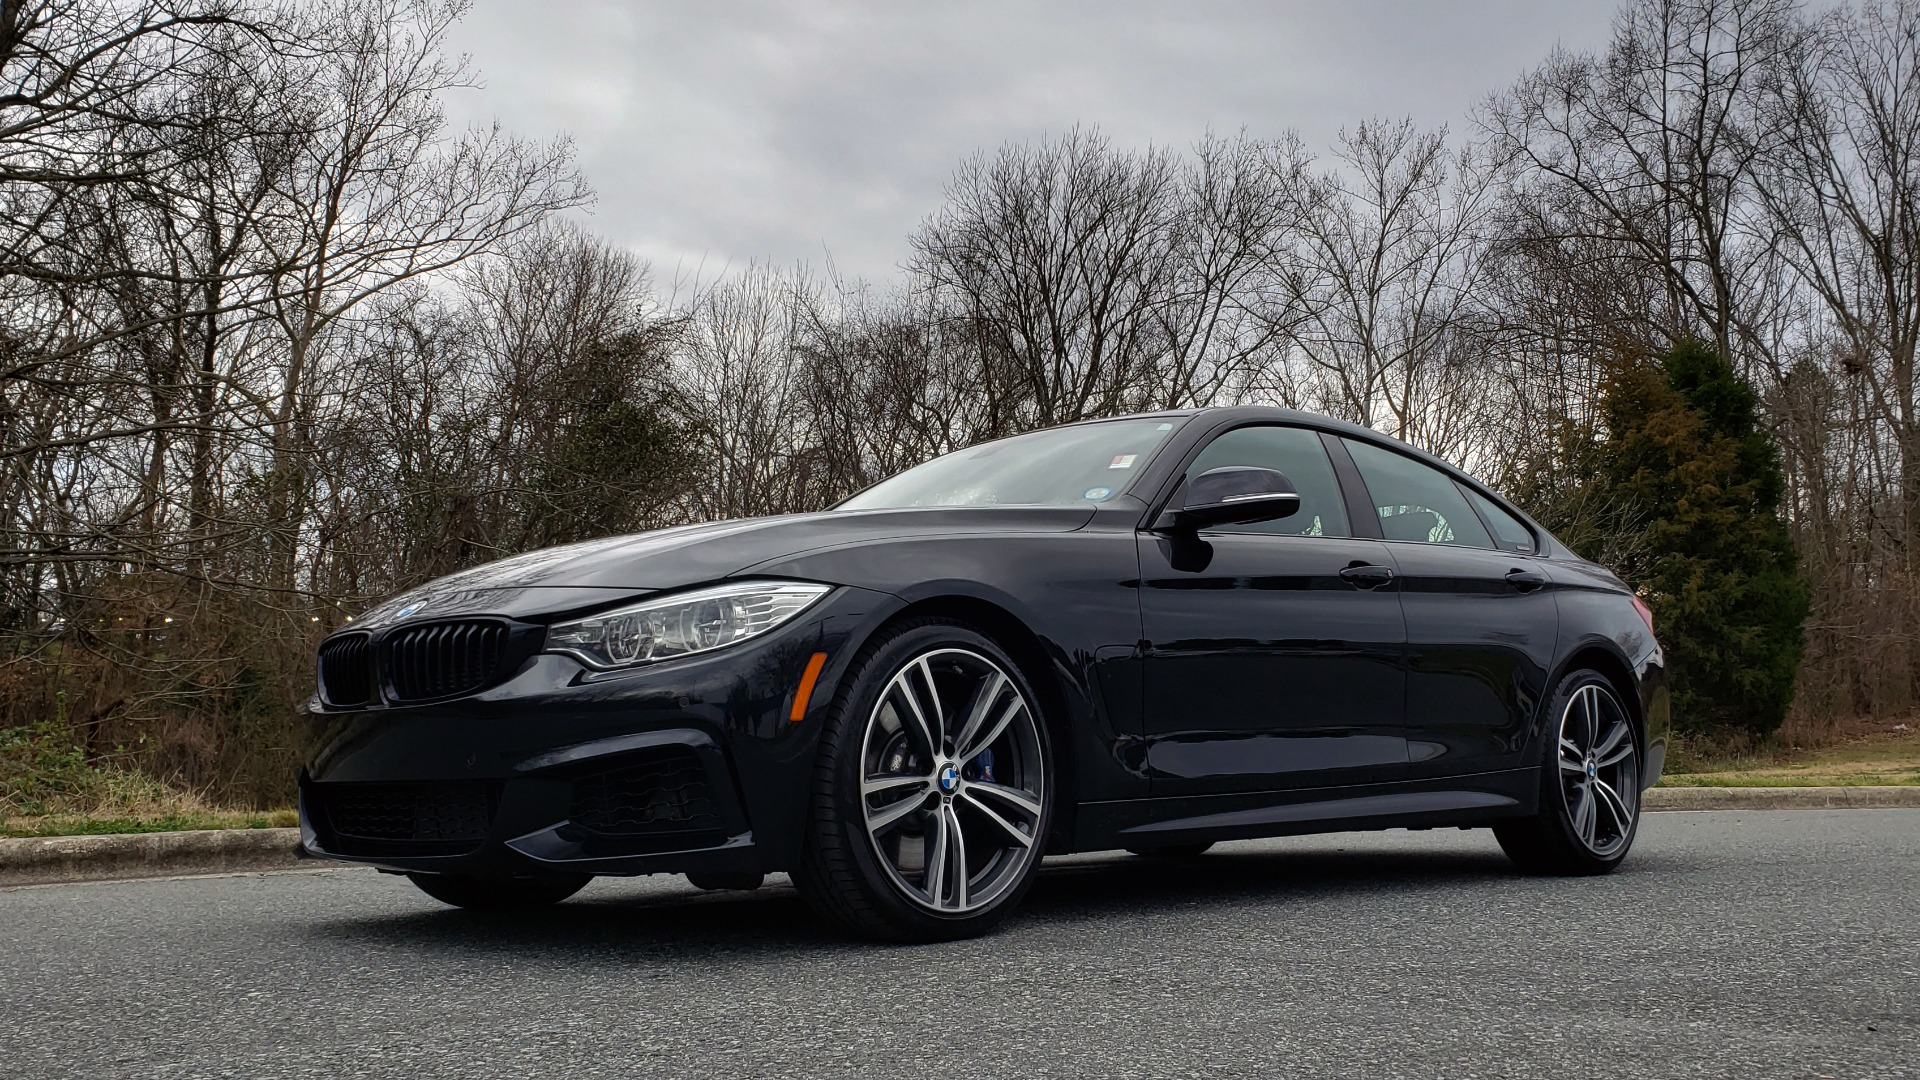 Used 2017 BMW 4 SERIES 440i M-SPORT / TECH / TRACK HANDLING / APPLE CAR PLAY for sale Sold at Formula Imports in Charlotte NC 28227 2